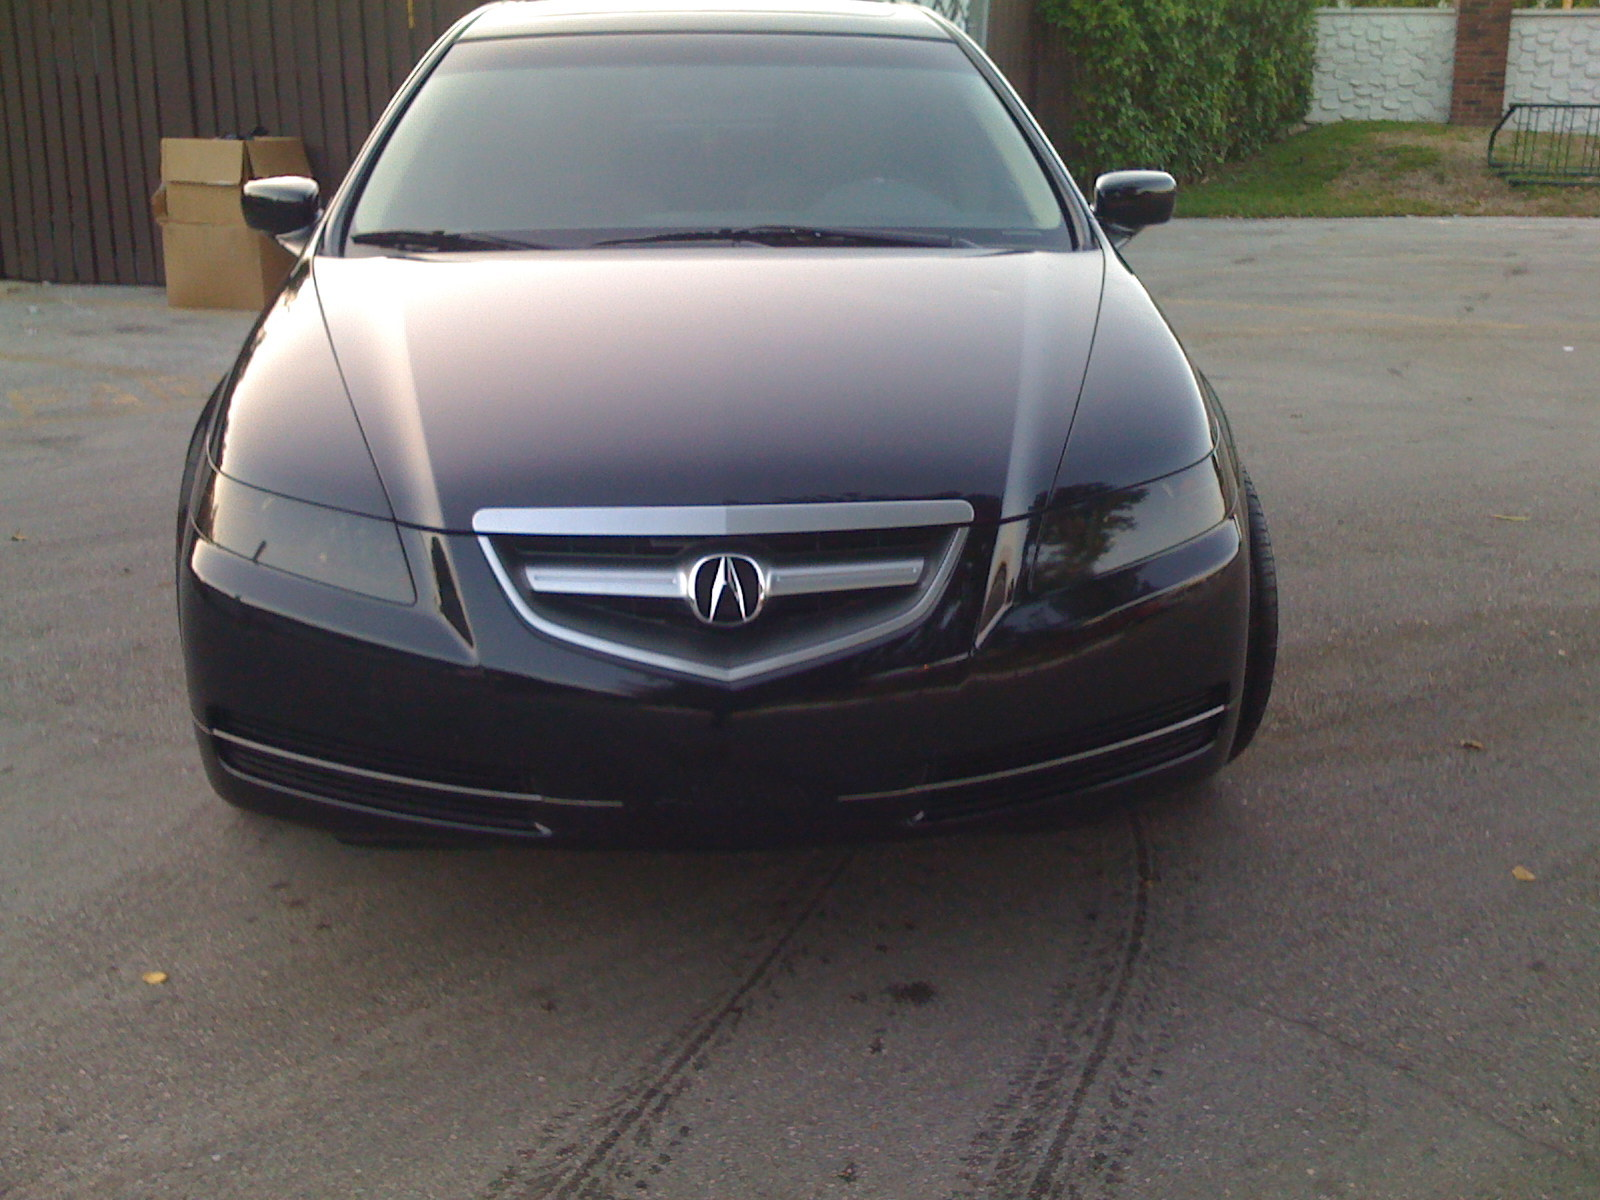 DremanAcura Acura TL Specs Photos Modification Info At CarDomain - 2004 acura tl headlights